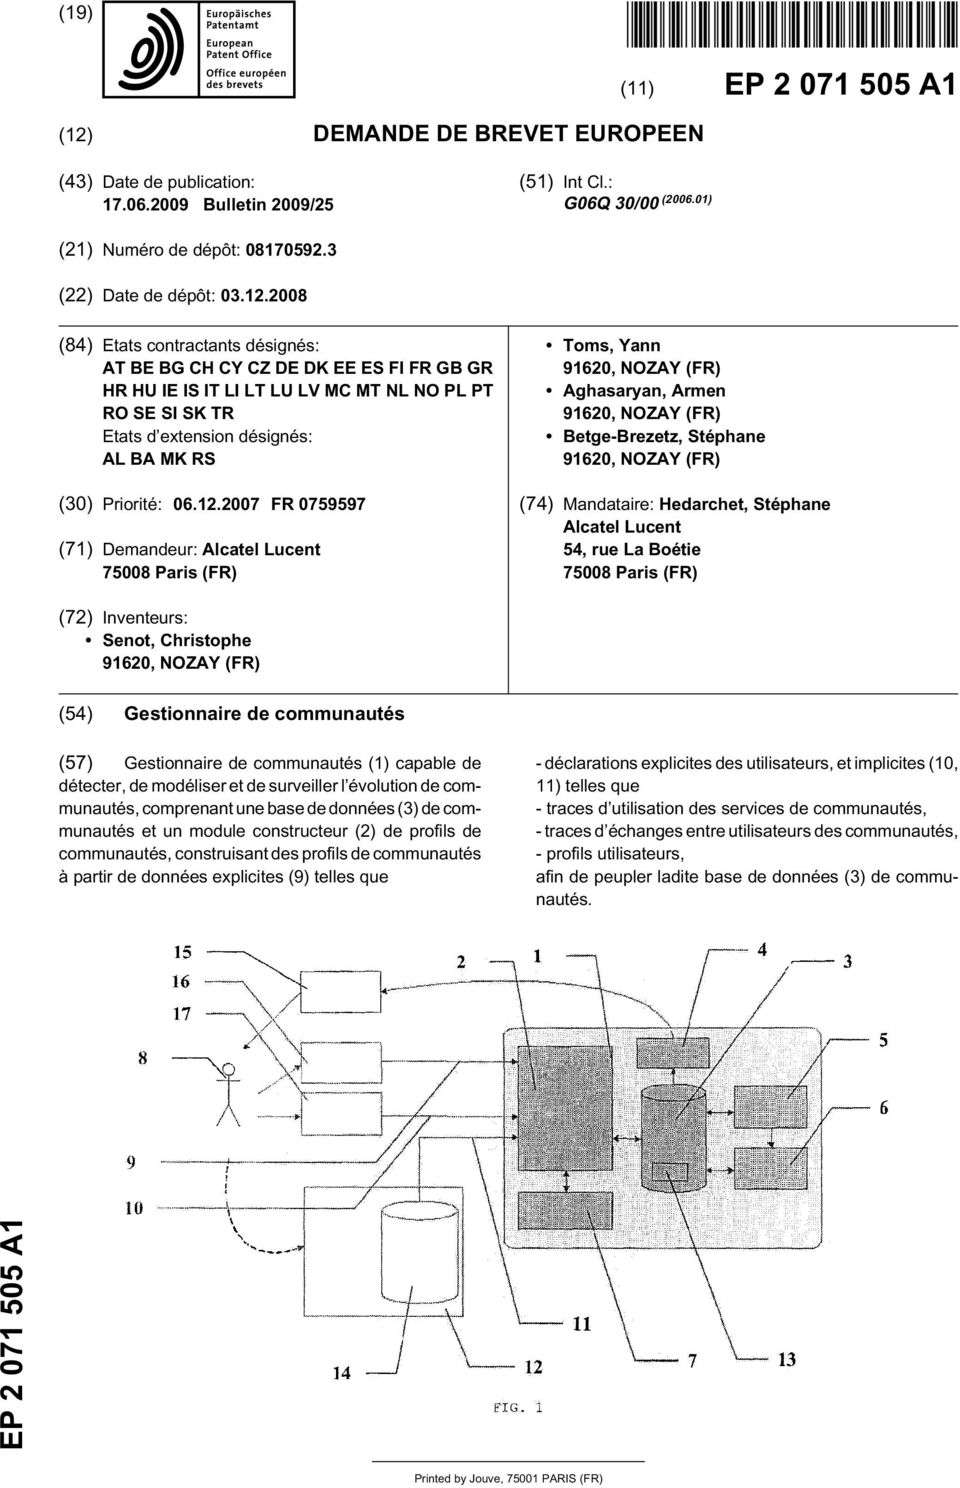 08 (84) Etats contractants désignés: AT BE BG CH CY CZ DE DK EE ES FI FR GB GR HR HU IE IS IT LI LT LU LV MC MT NL NO PL PT RO SE SI SK TR Etats d extension désignés: AL BA MK RS () Priorité: 06.12.